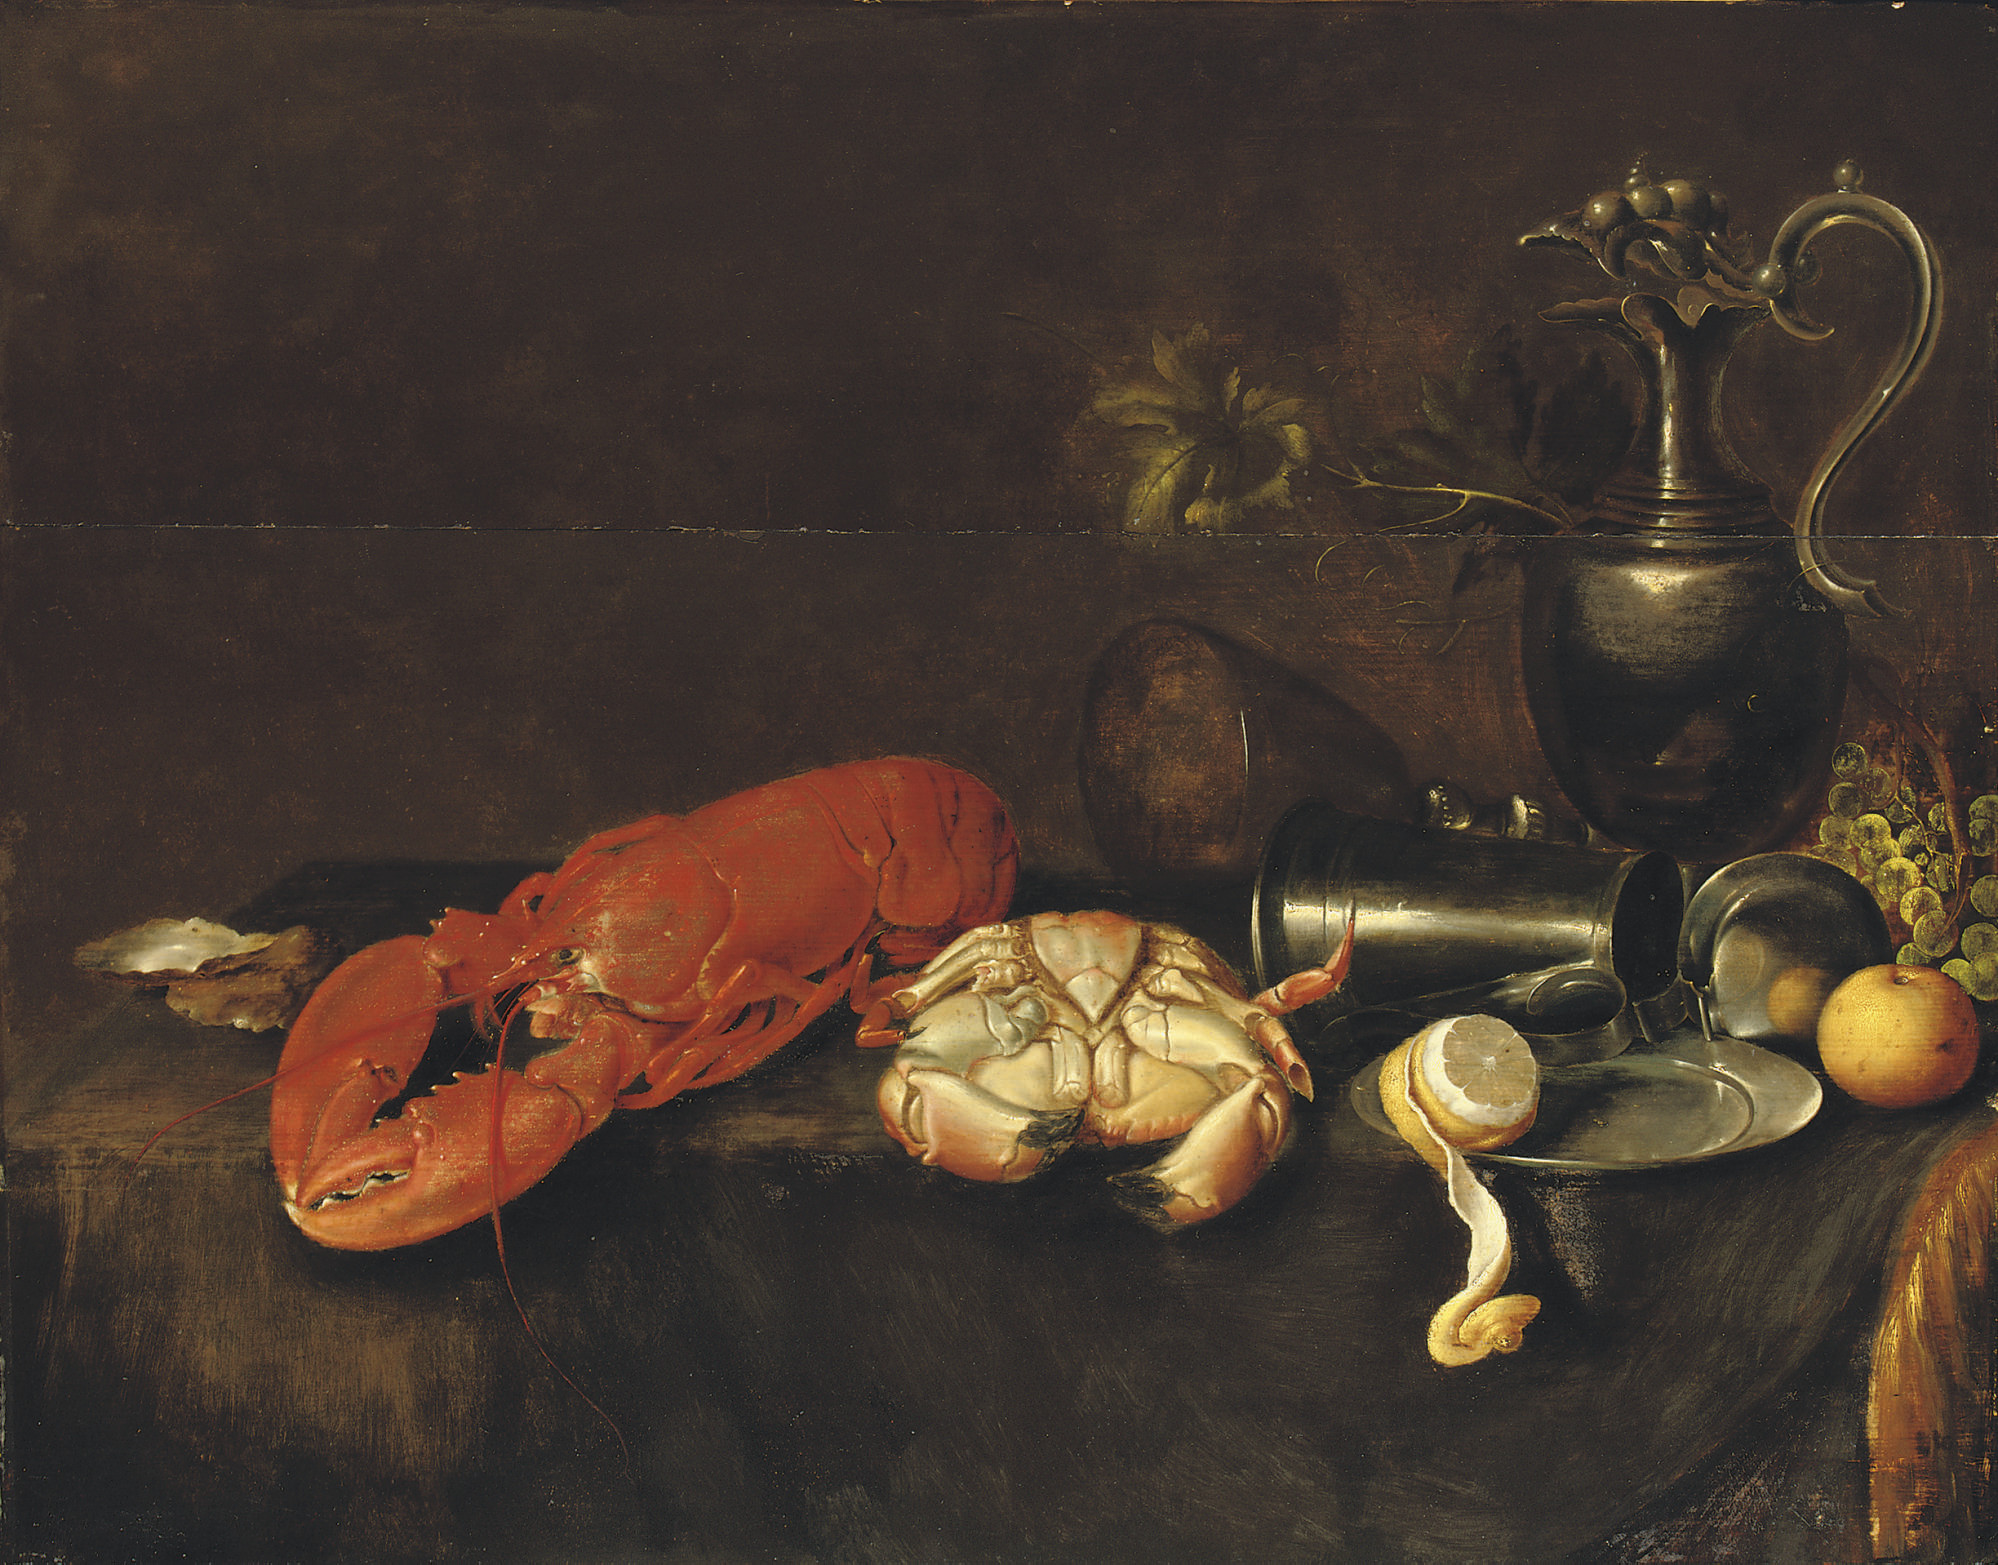 Circle of Jan Davidsz. de Heem